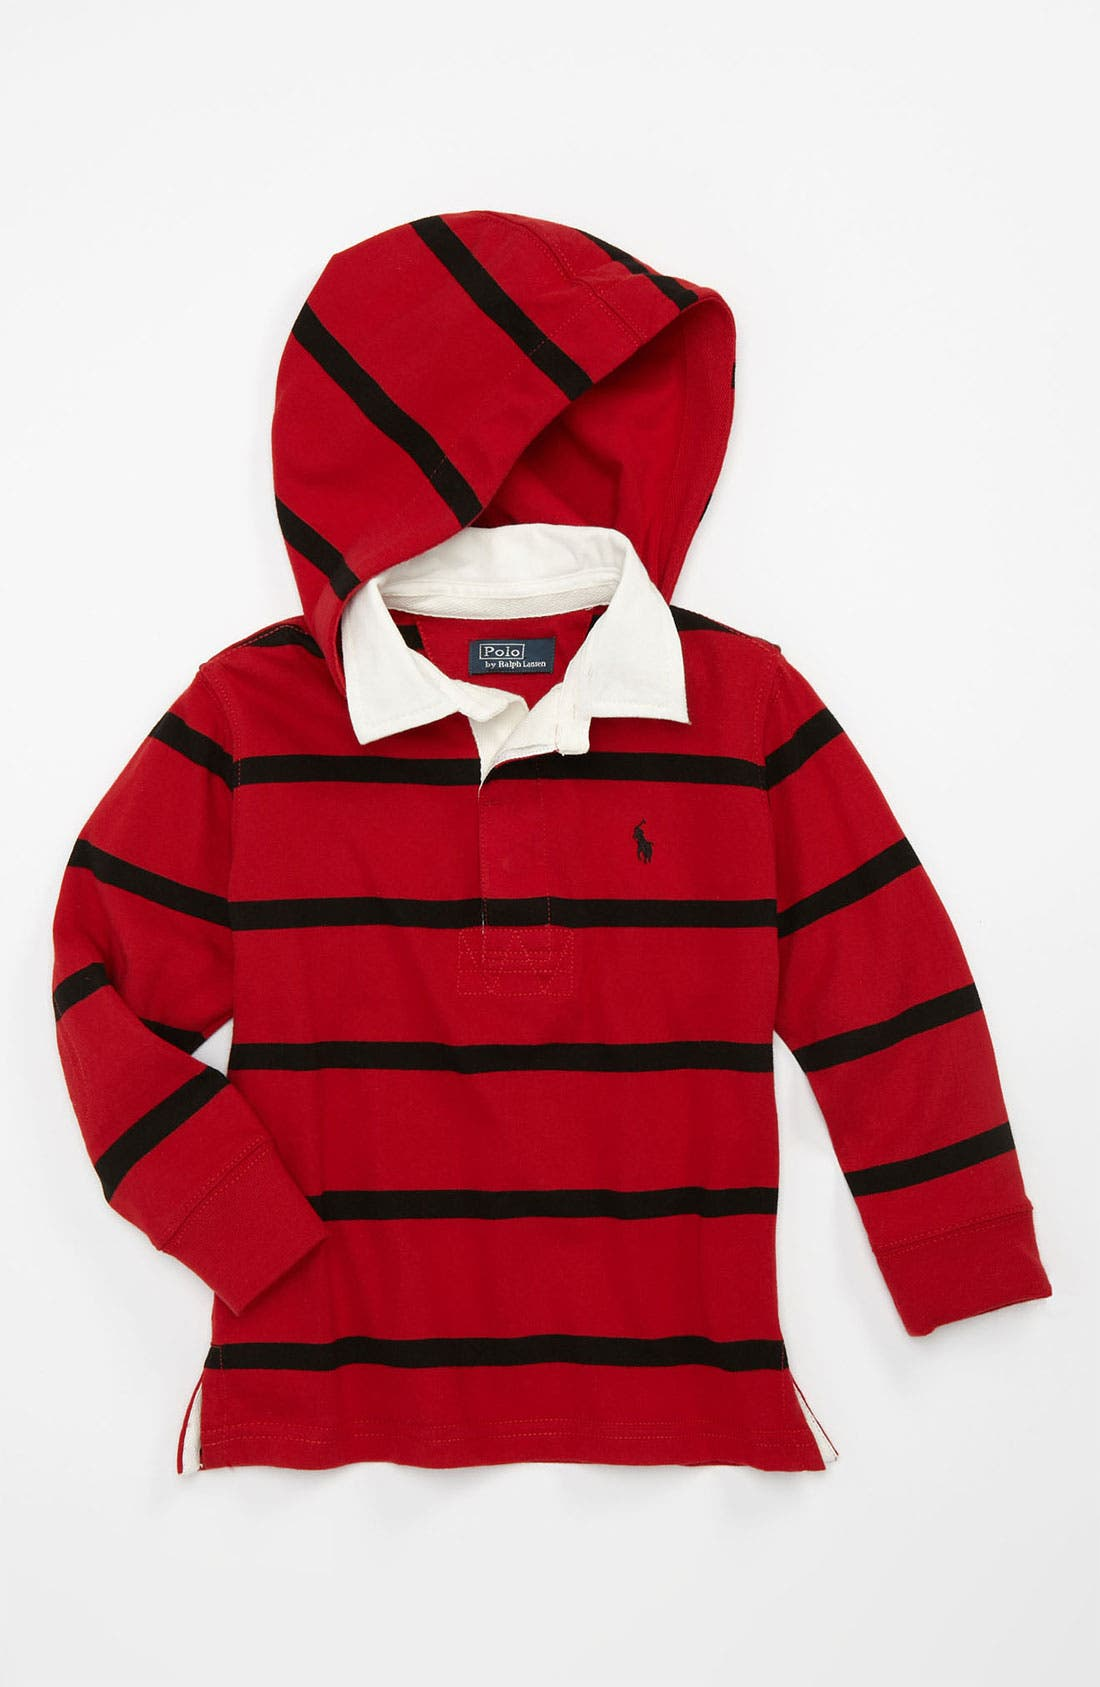 Main Image - Ralph Lauren Hooded Rugby Shirt (Toddler)